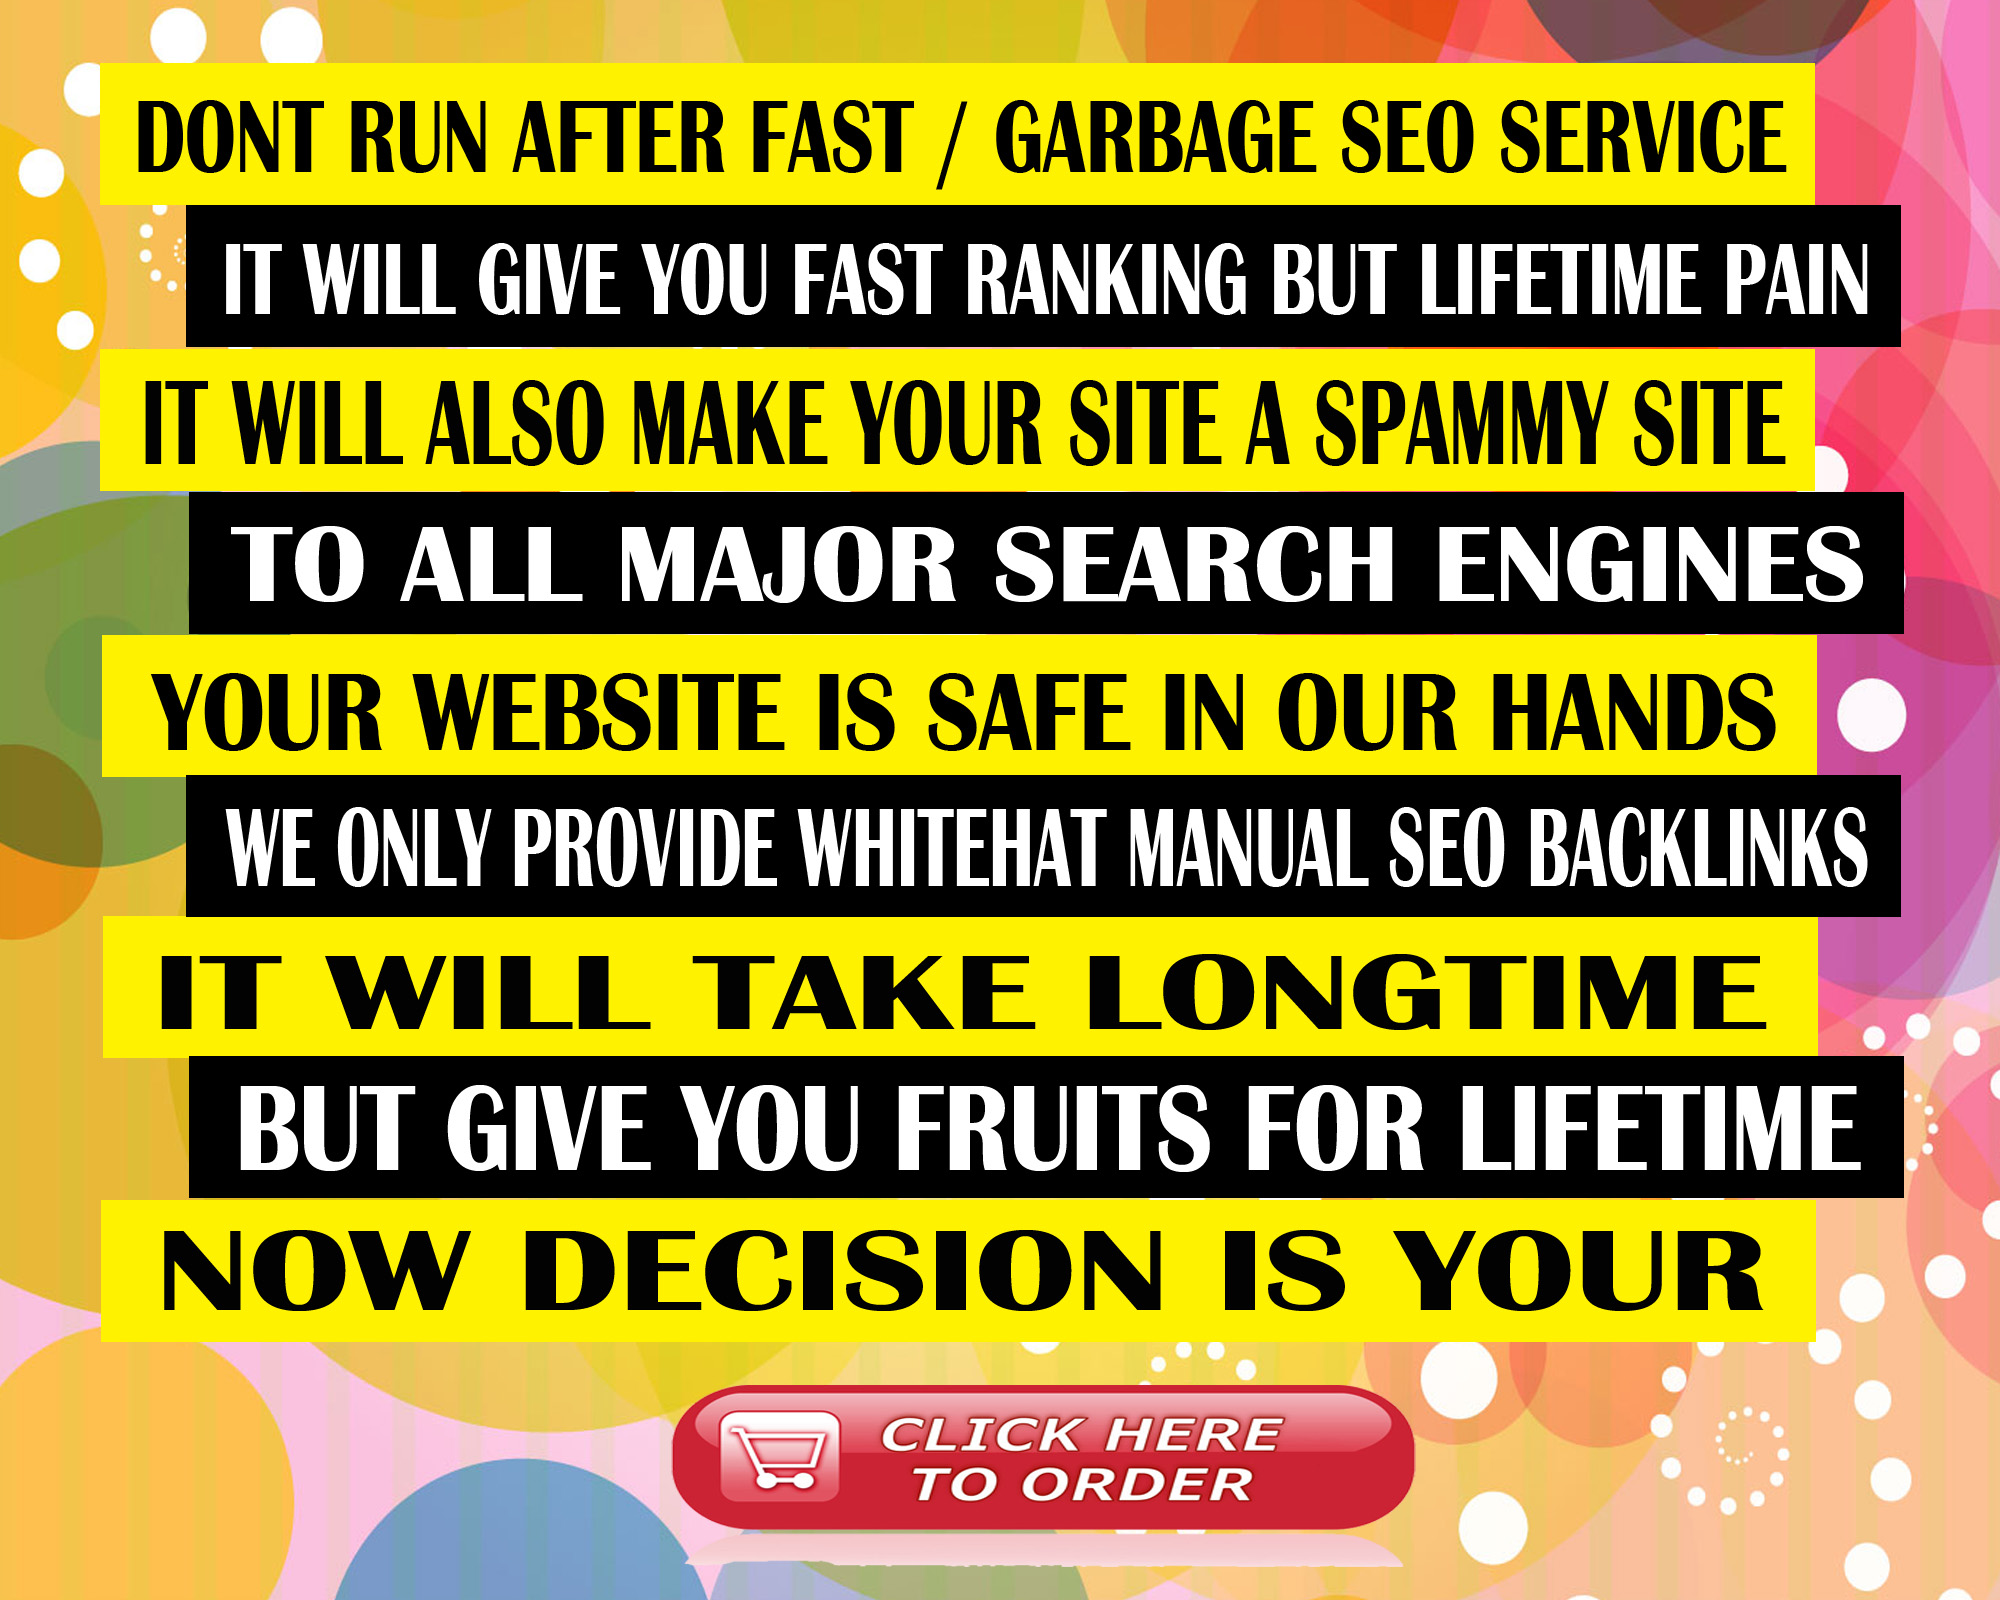 14 Days Manual Whitehat SEO Backlinks To Rank Website Fast